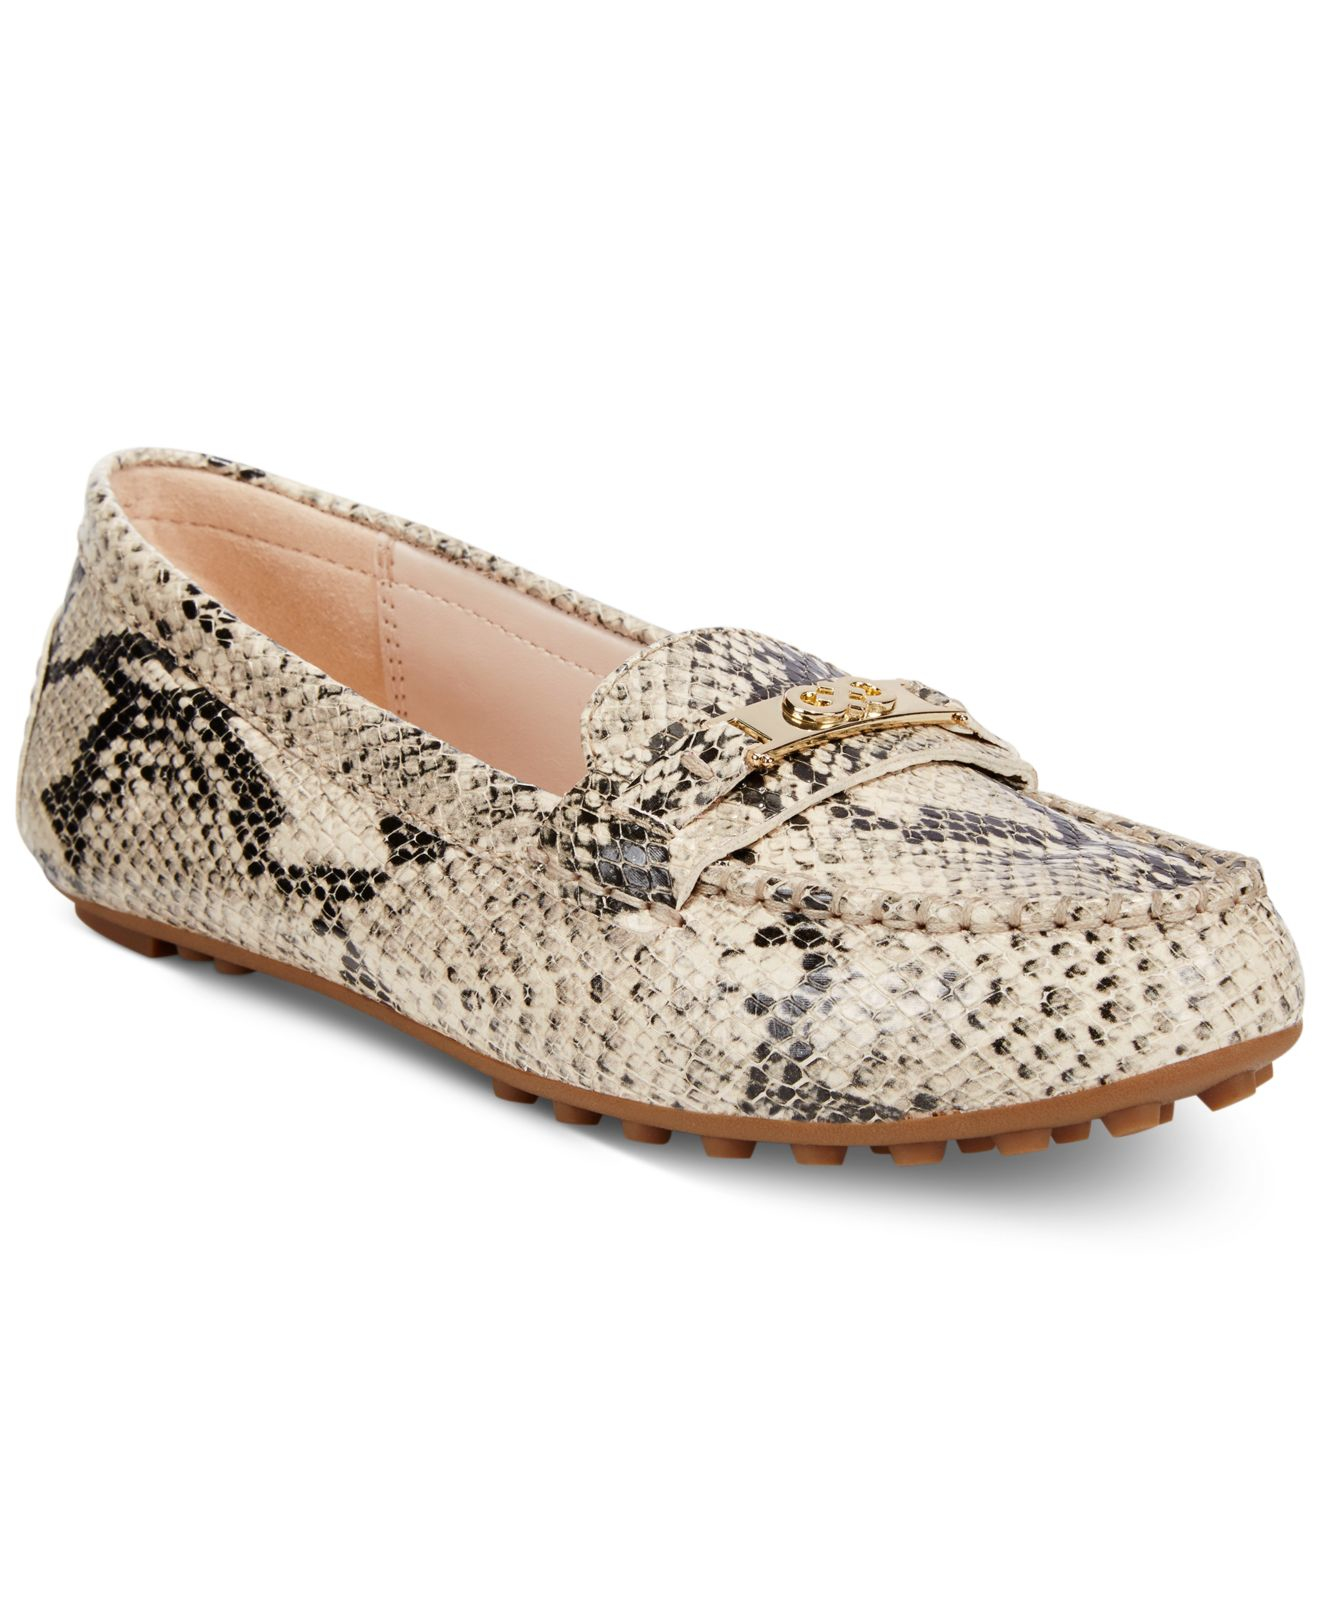 8f9f5ad620e Lyst - Cole Haan Women s Isabeli Driver Loafers in Natural